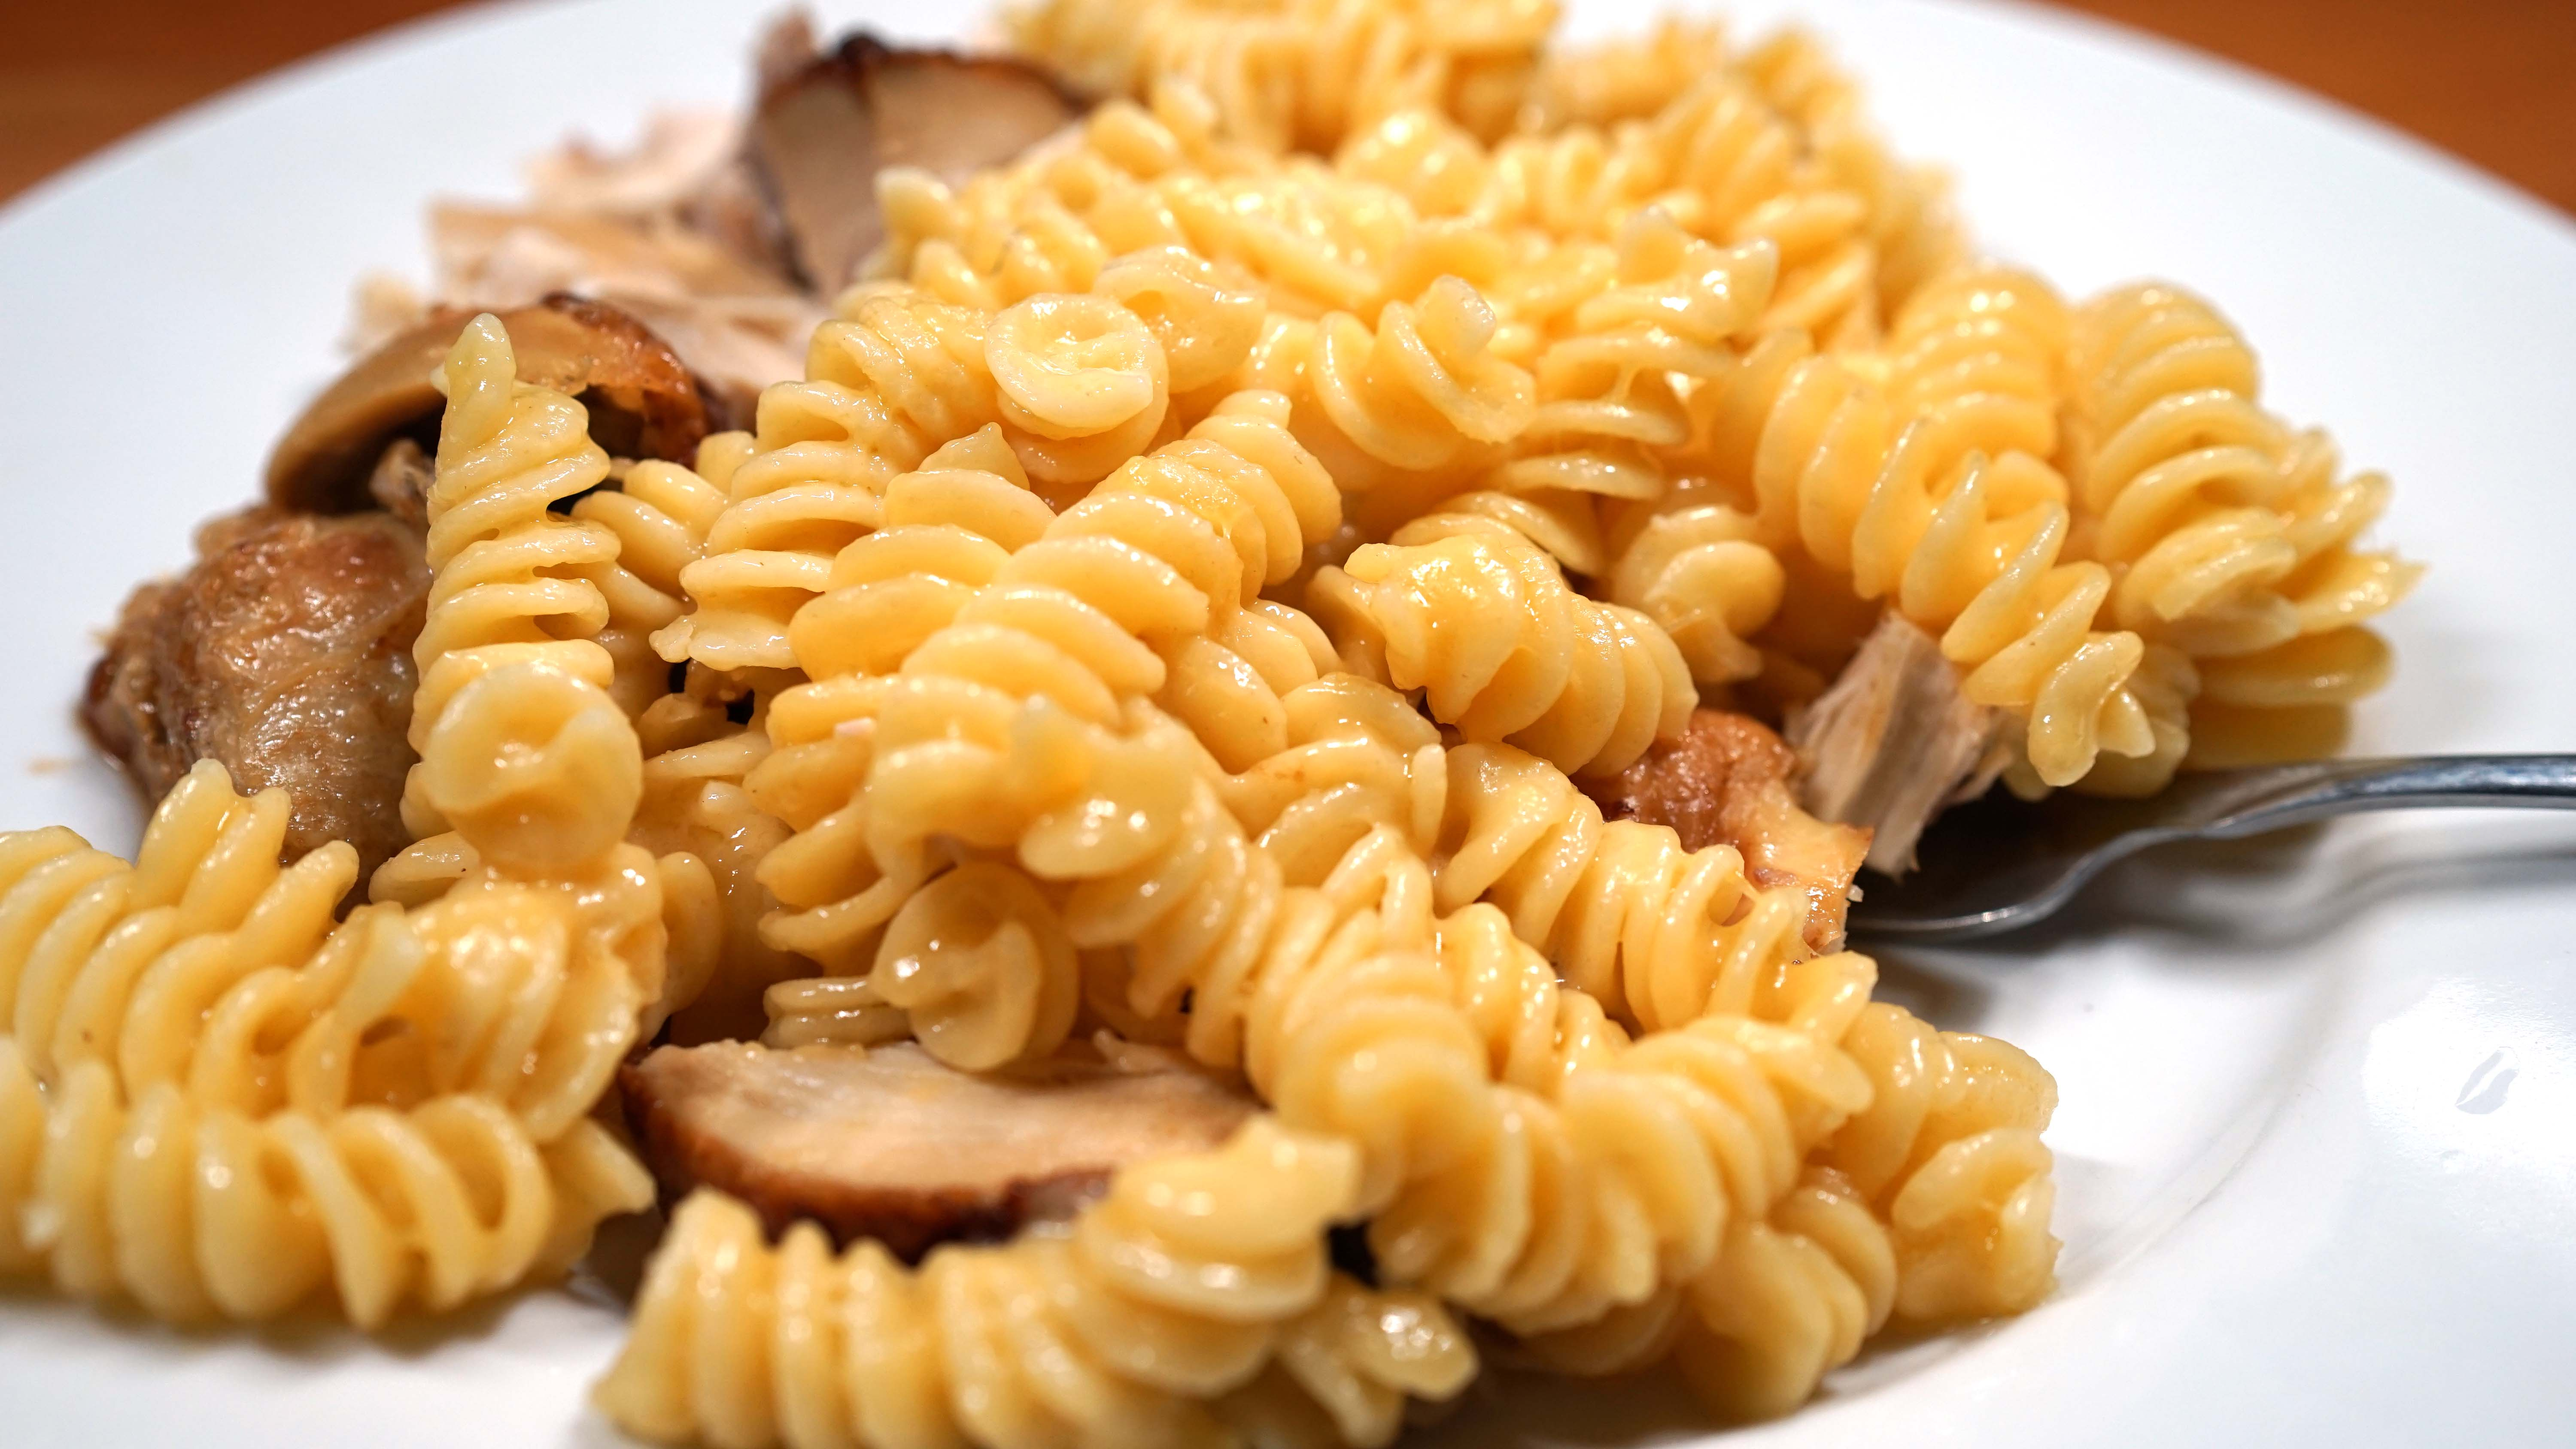 fusilli noodles macaroni and cheese